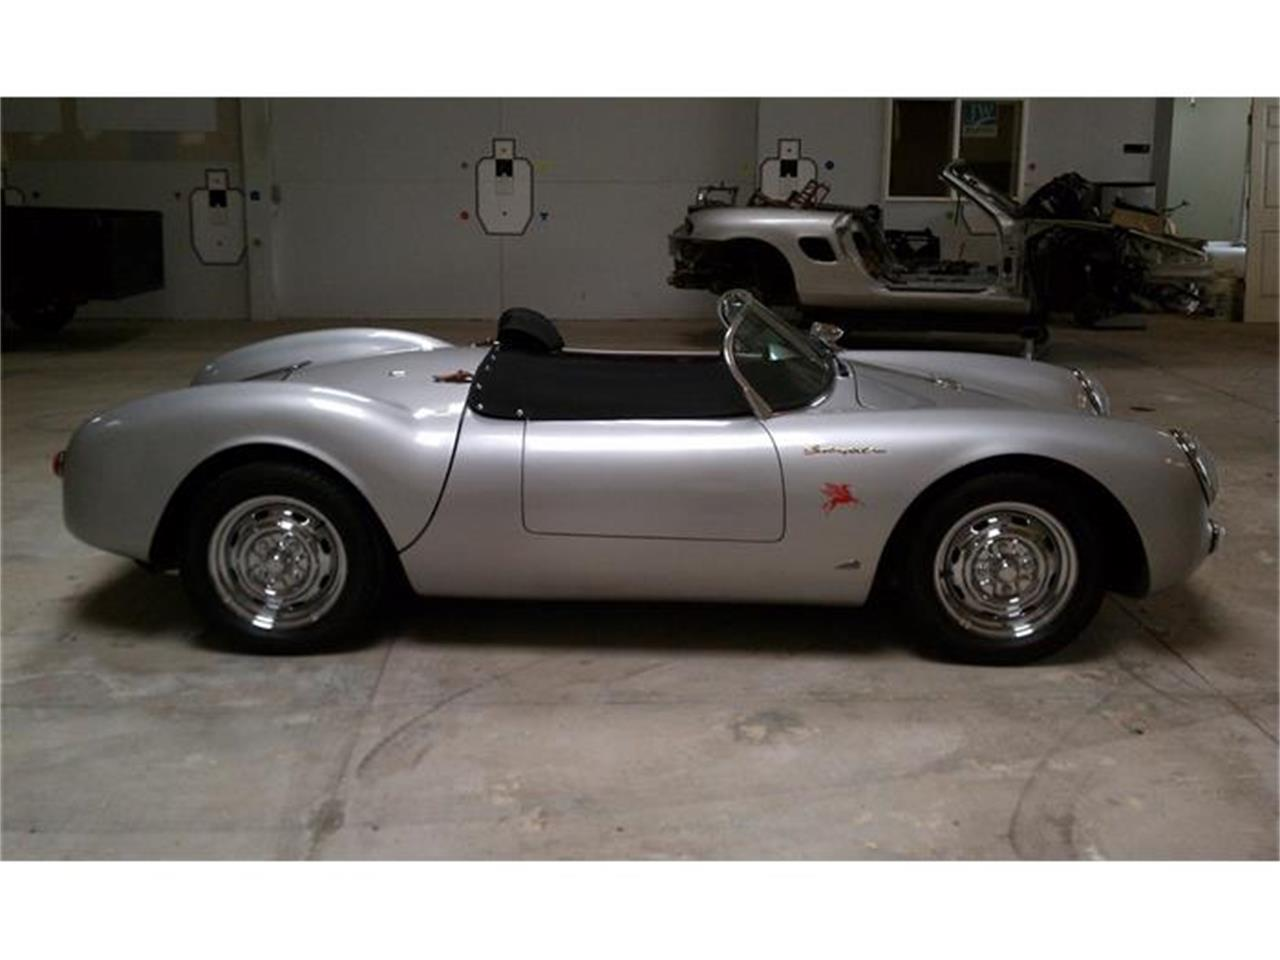 Large Picture of '55 Porsche 550 Spyder Replica - $35,950.00 Offered by Beverly Hills Motor Cars - C4HF